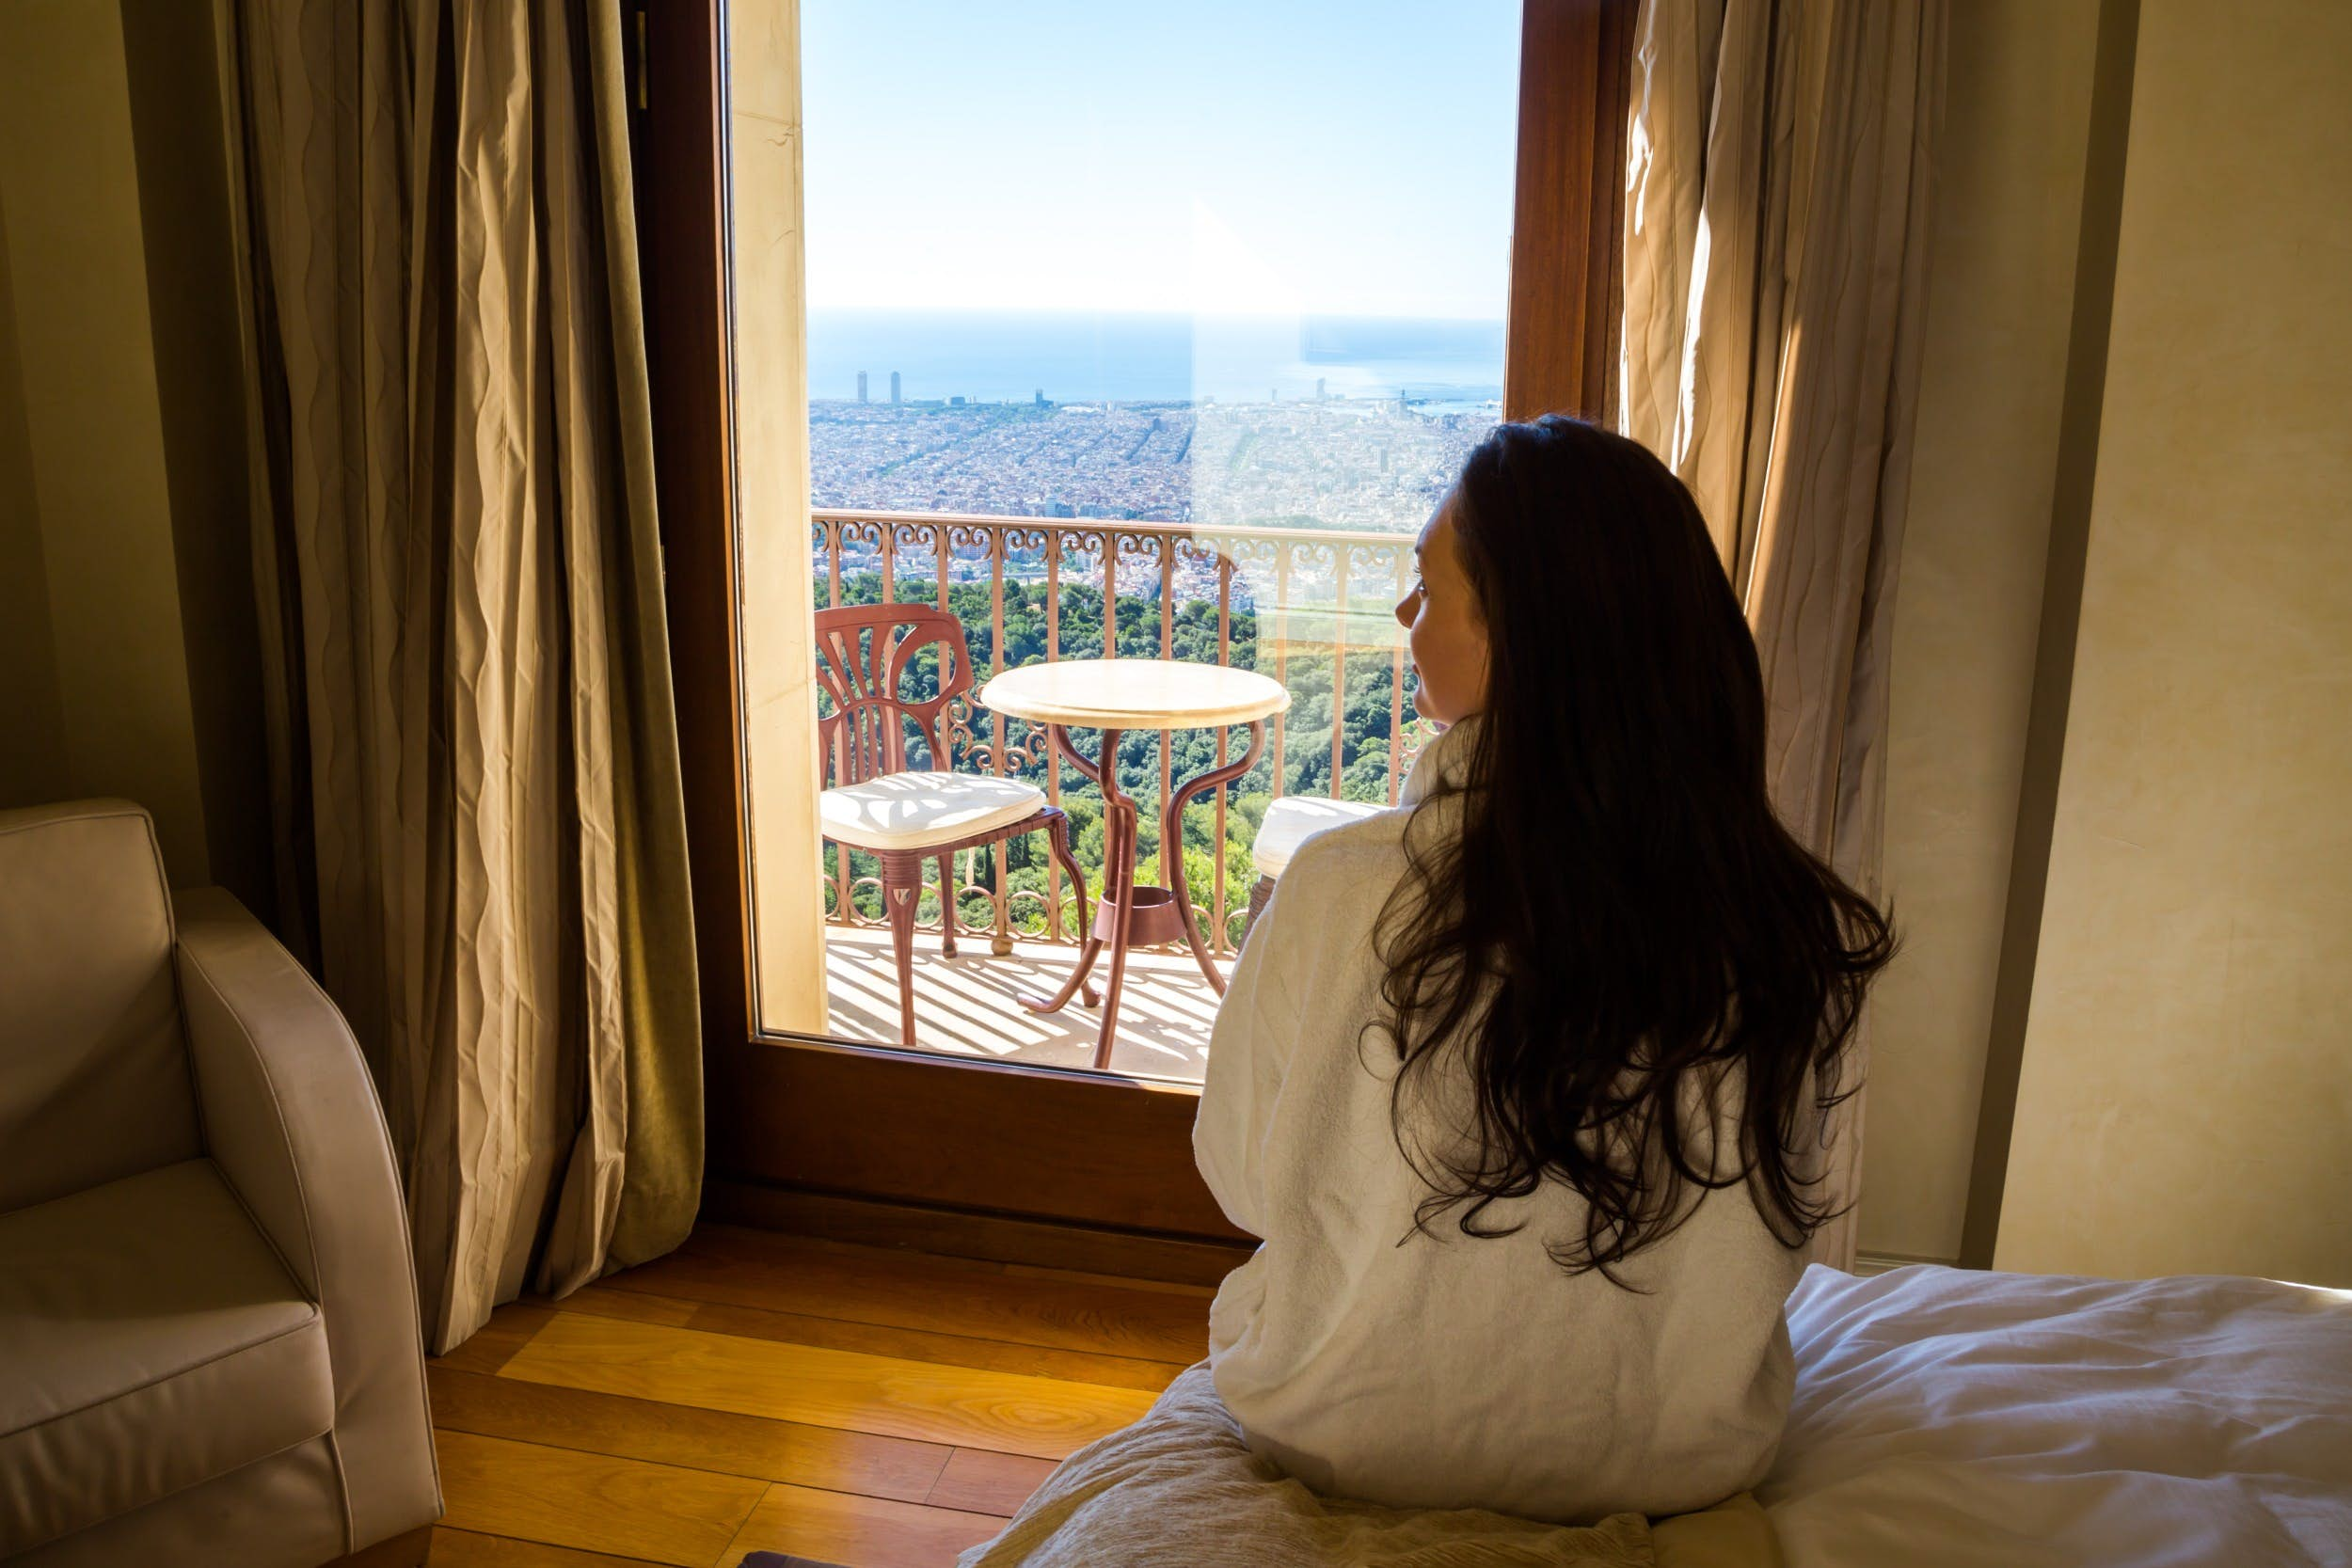 10 ways hotel stays will change after COVID-19 - Lonely Planet